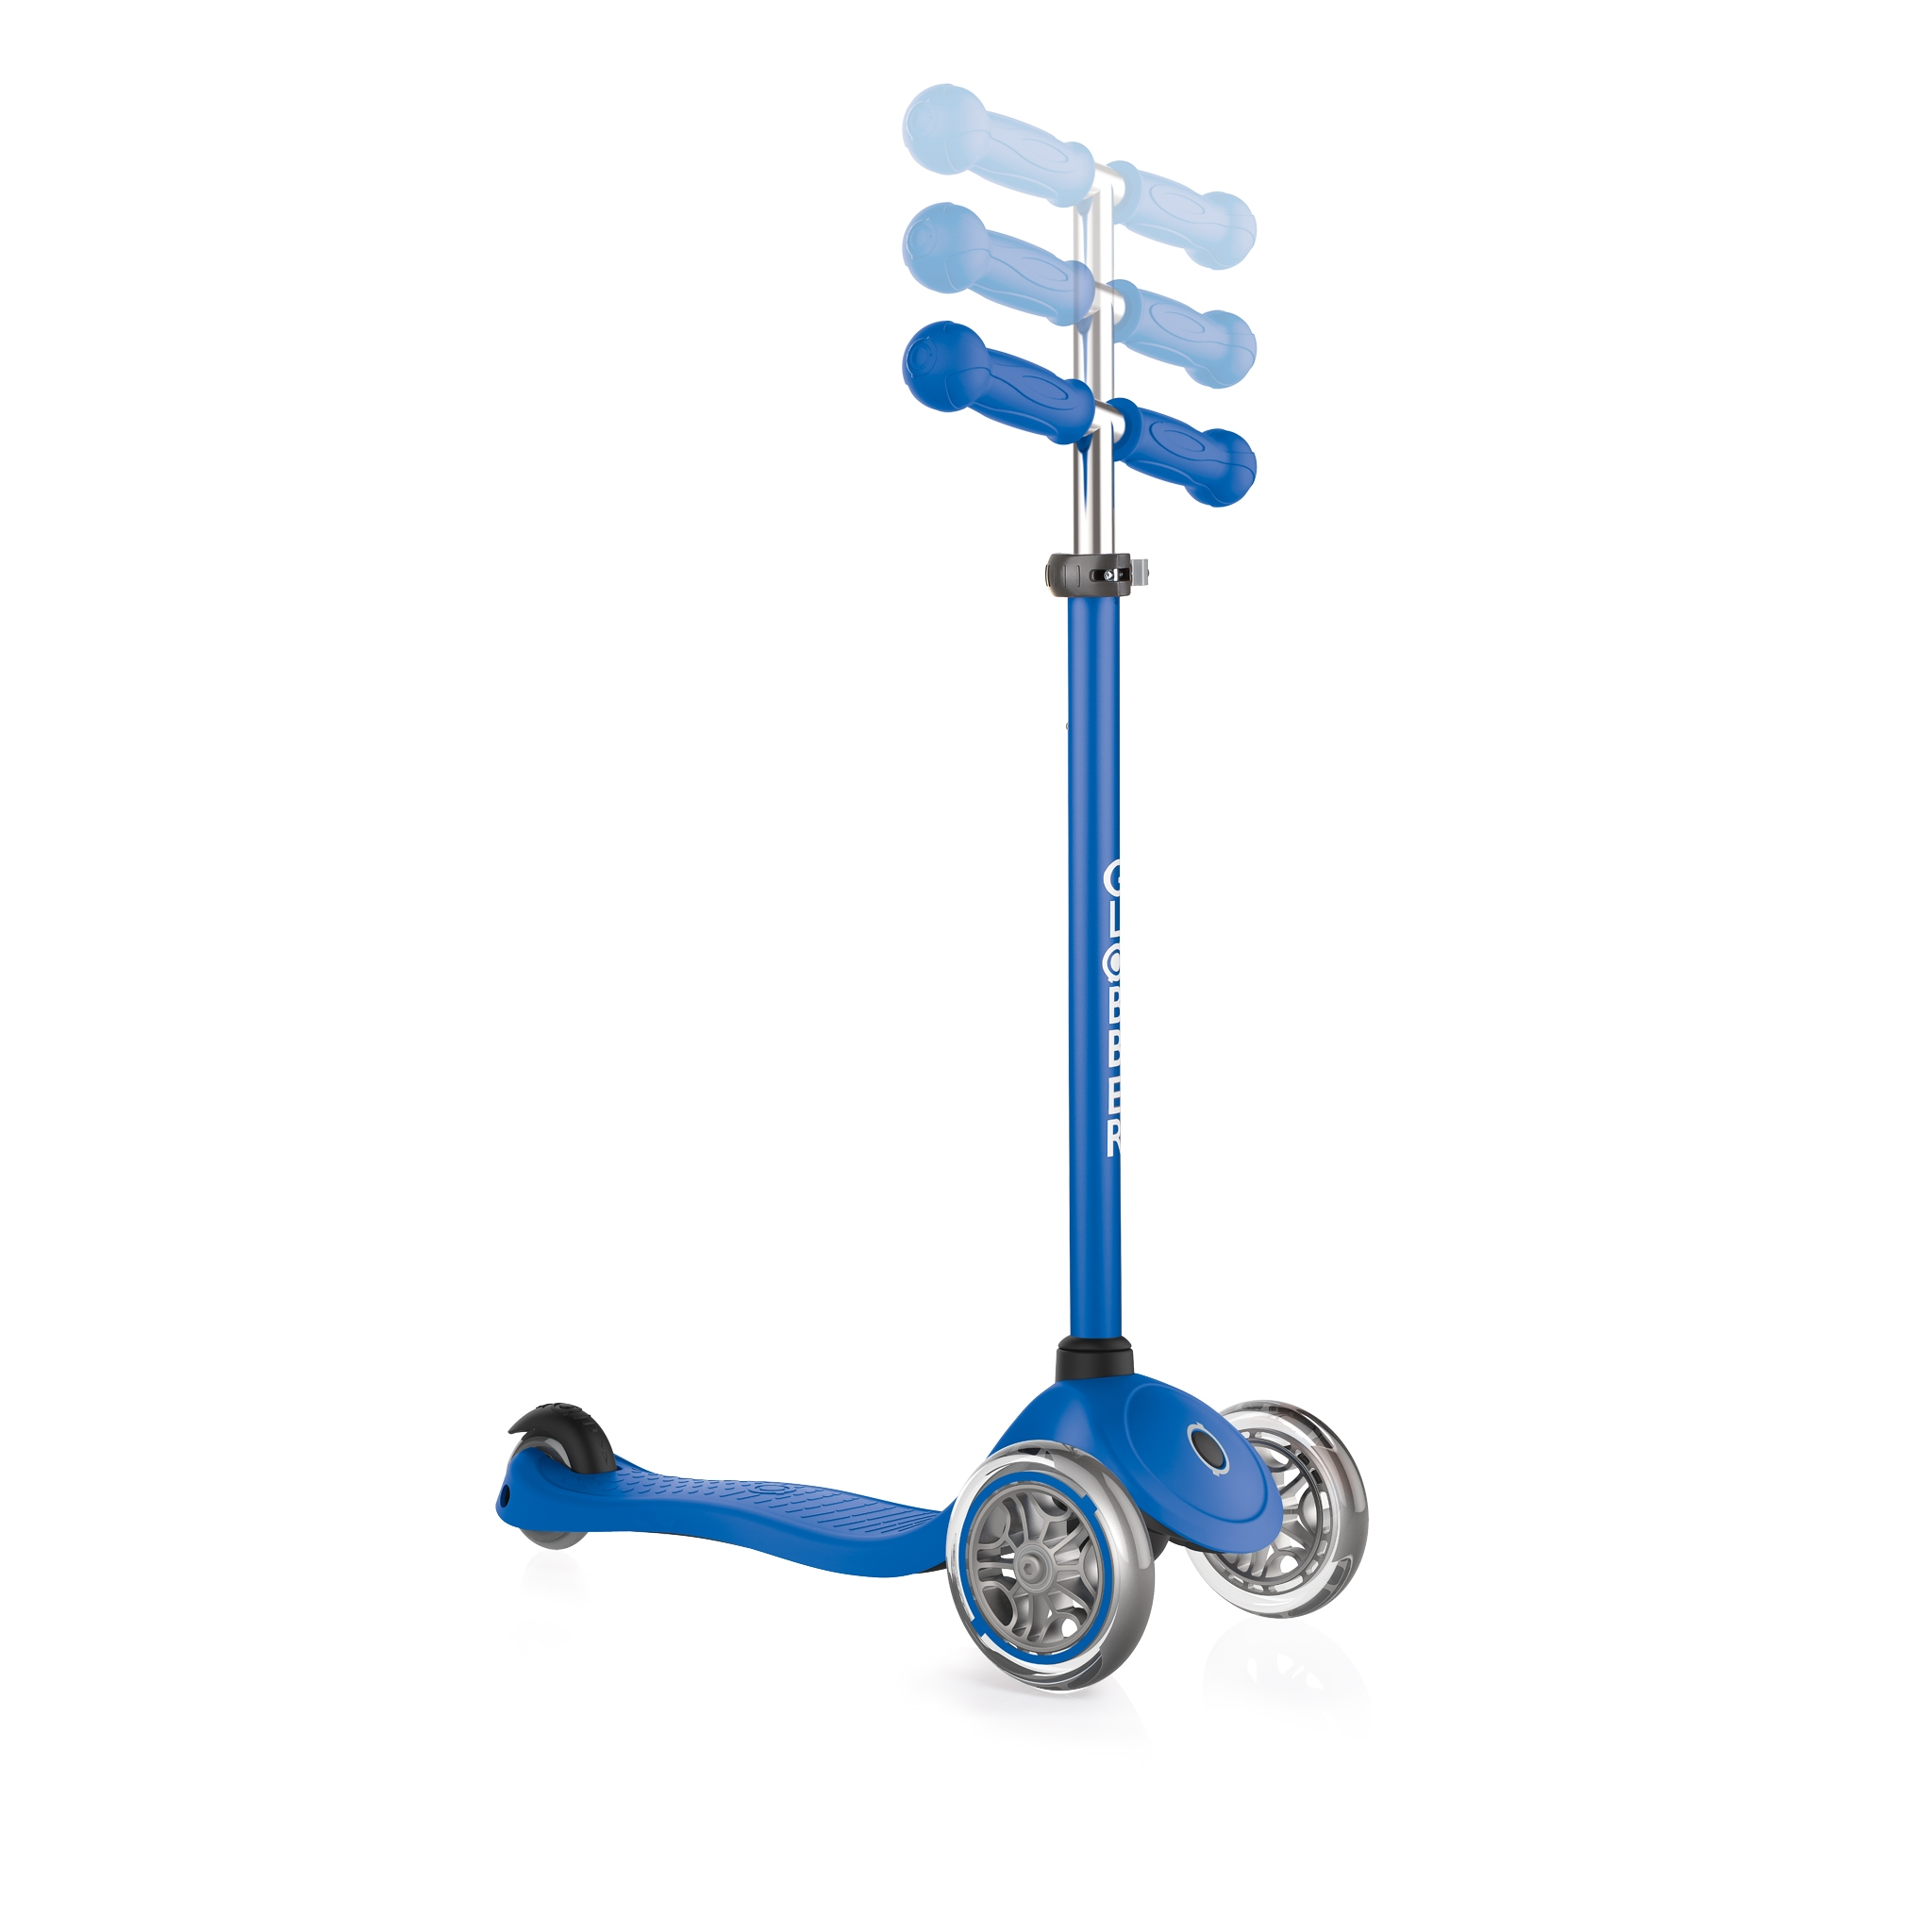 PRIMO-3-wheel-scooter-for-kids-with-3-height-adjustable-T-bar_navy-blue.jpg 2